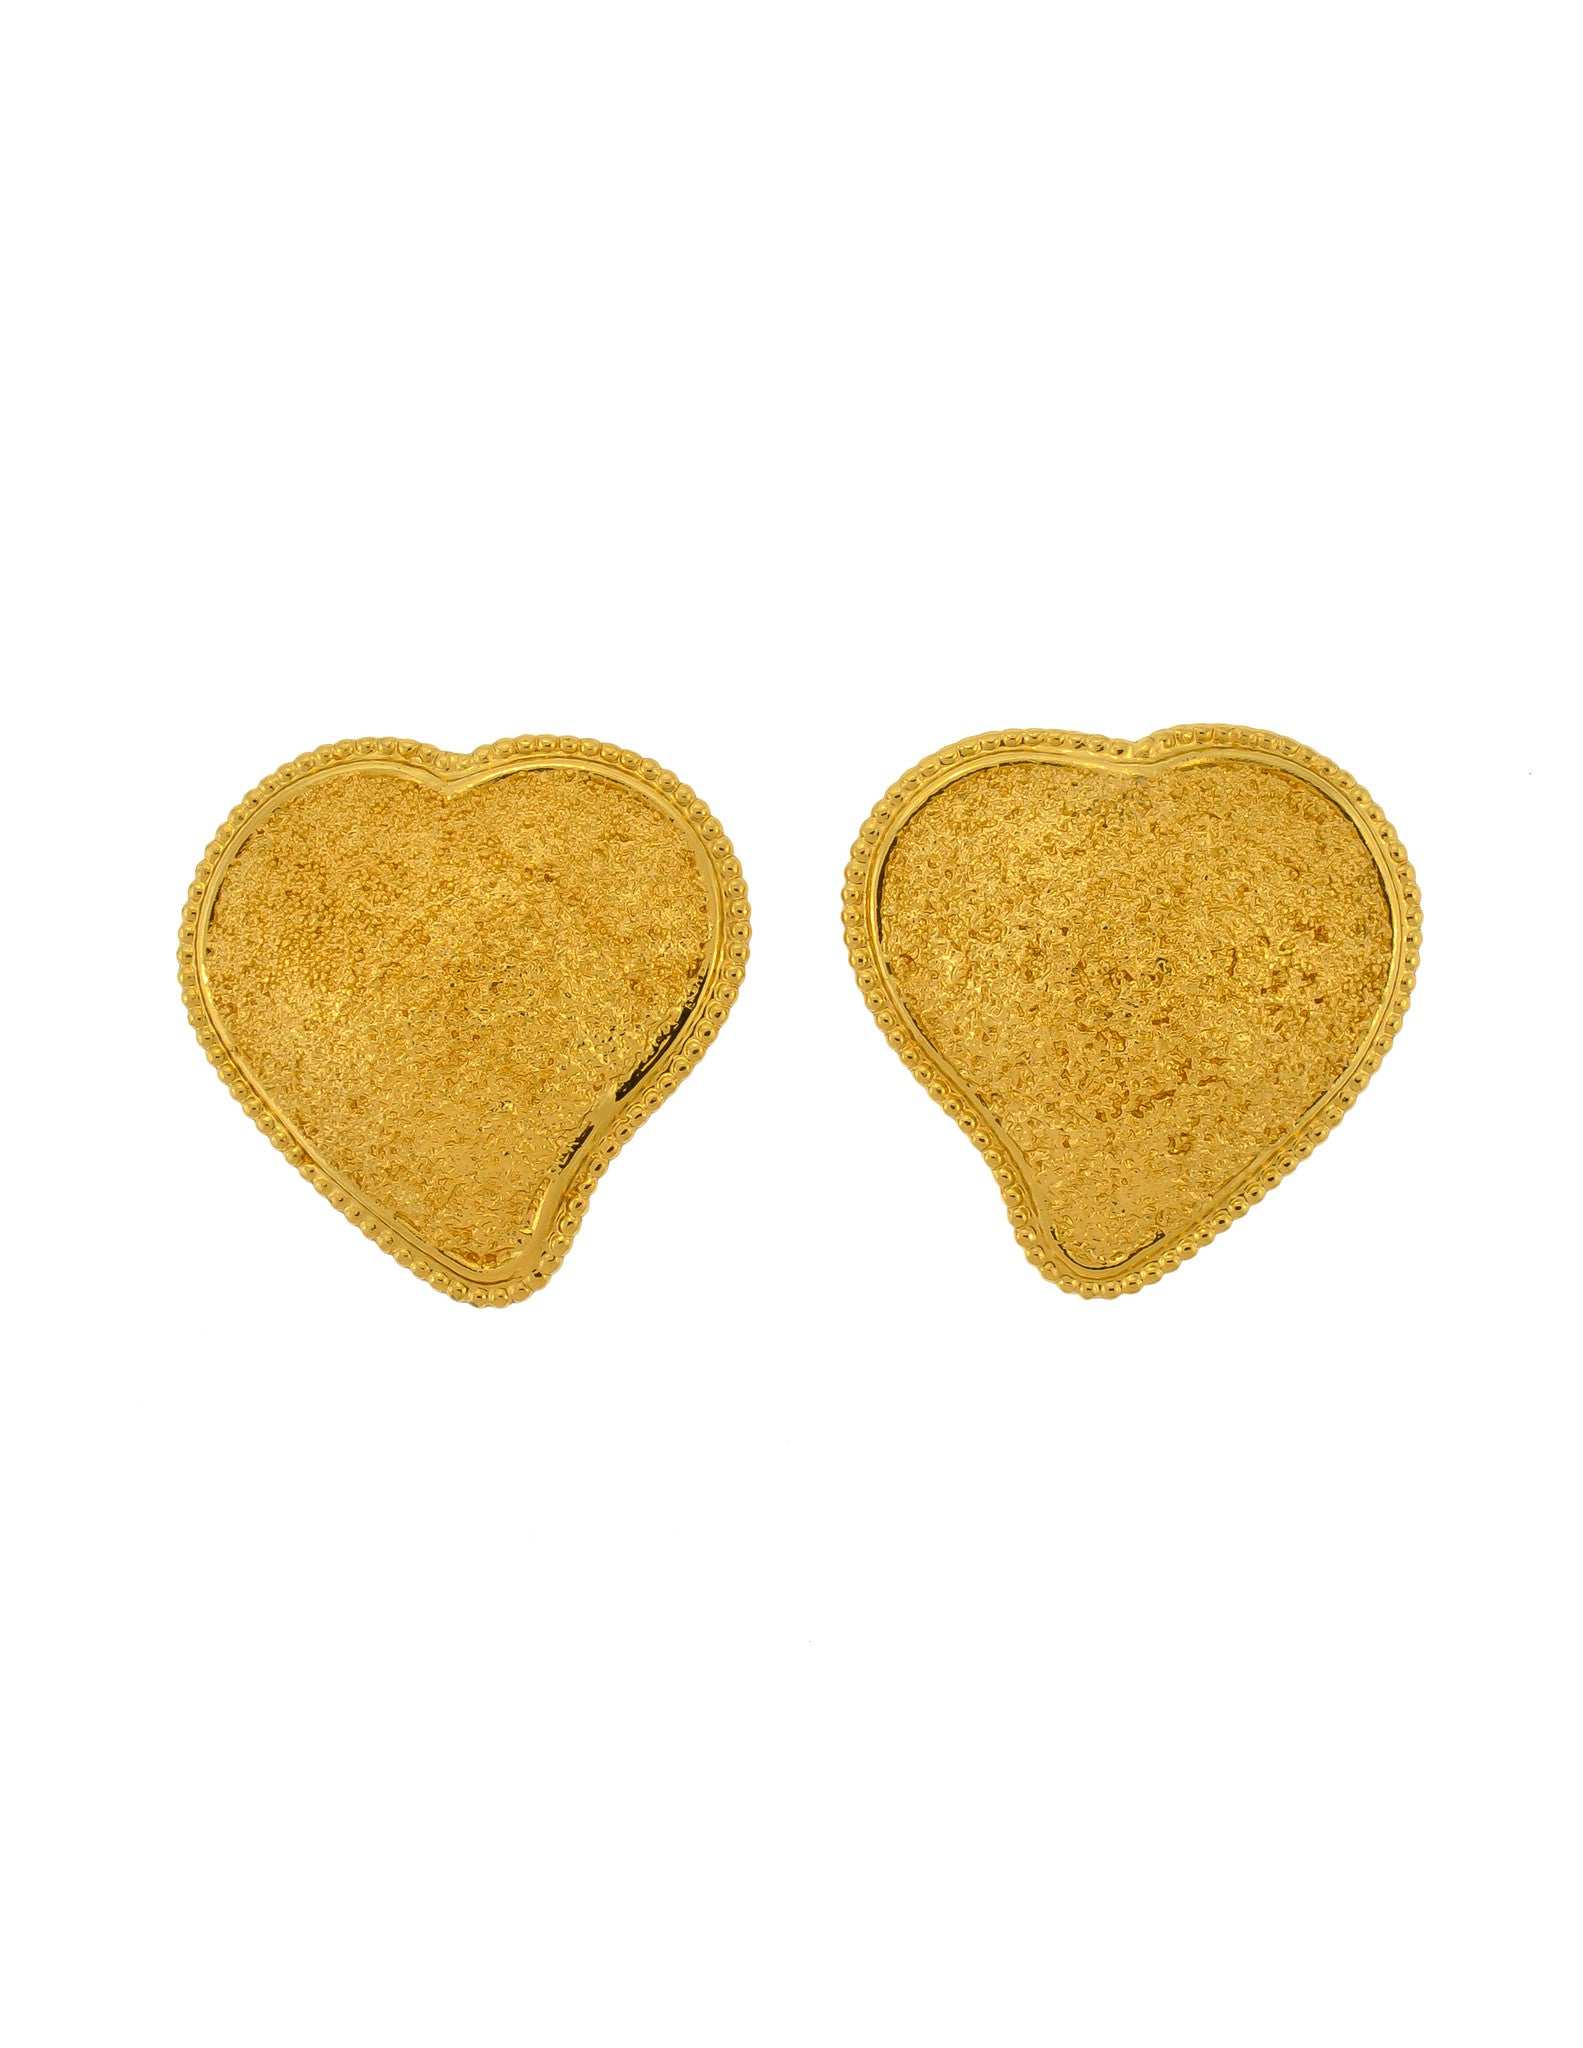 YSL Vintage Large Gold Textured Heart Earrings - Amarcord Vintage Fashion  - 1